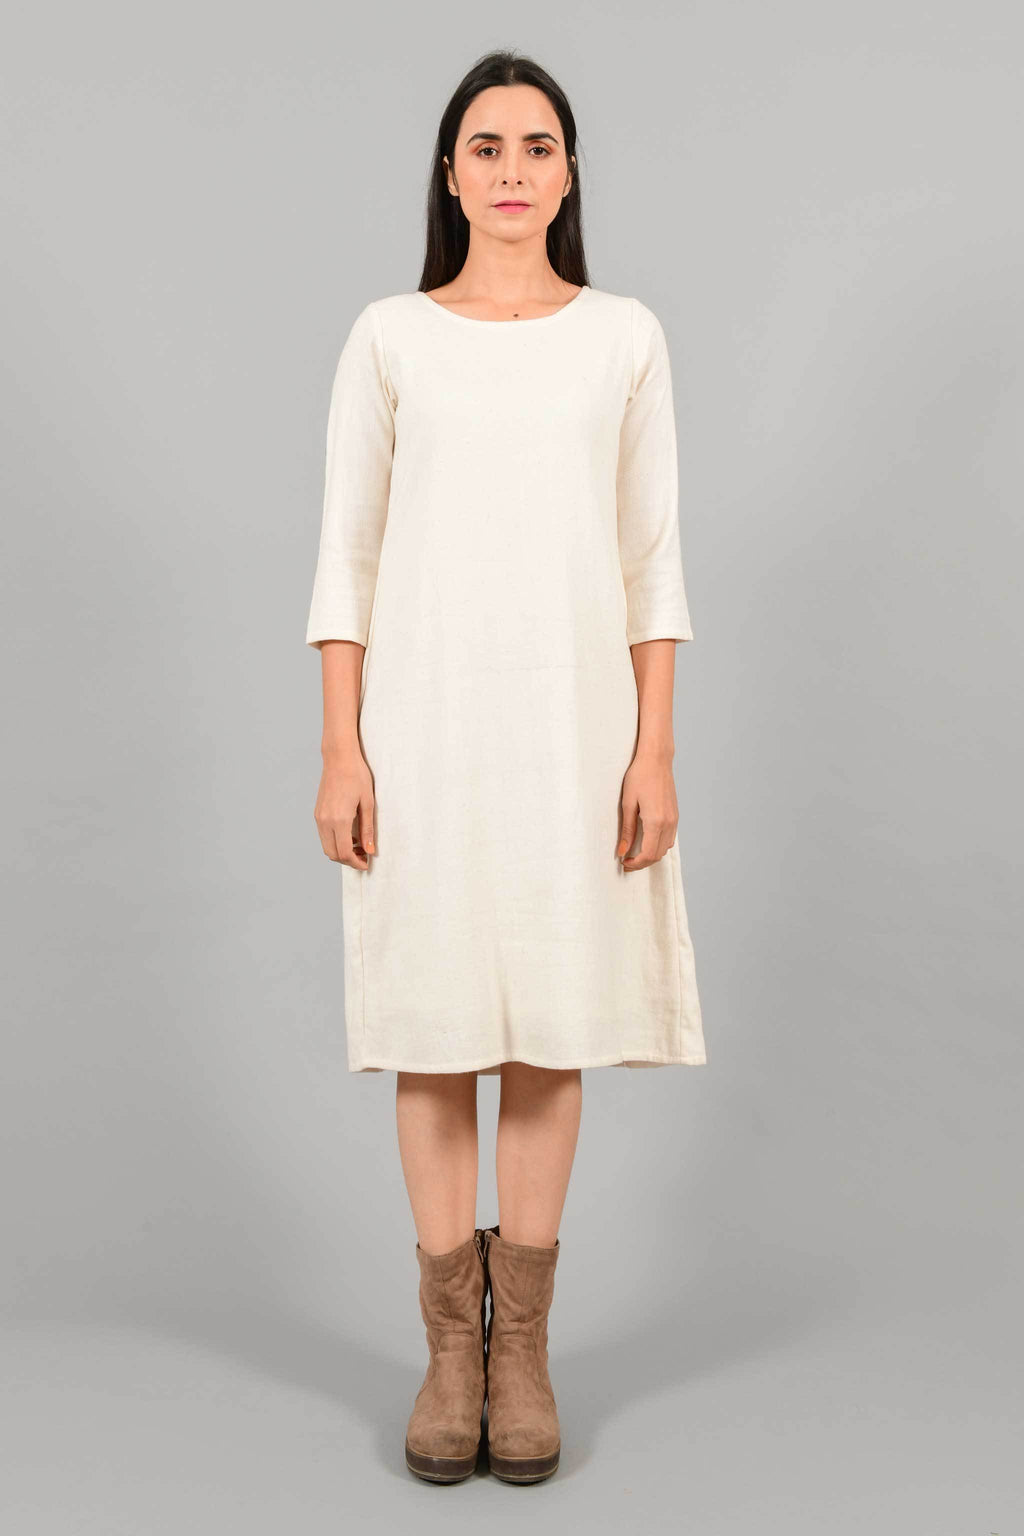 Front pose of an Indian female womenswear fashion model in an off-white Cashmere Cotton A-line Dress with box pleat on the back made using handspun and handwoven khadi cotton by Cotton Rack.